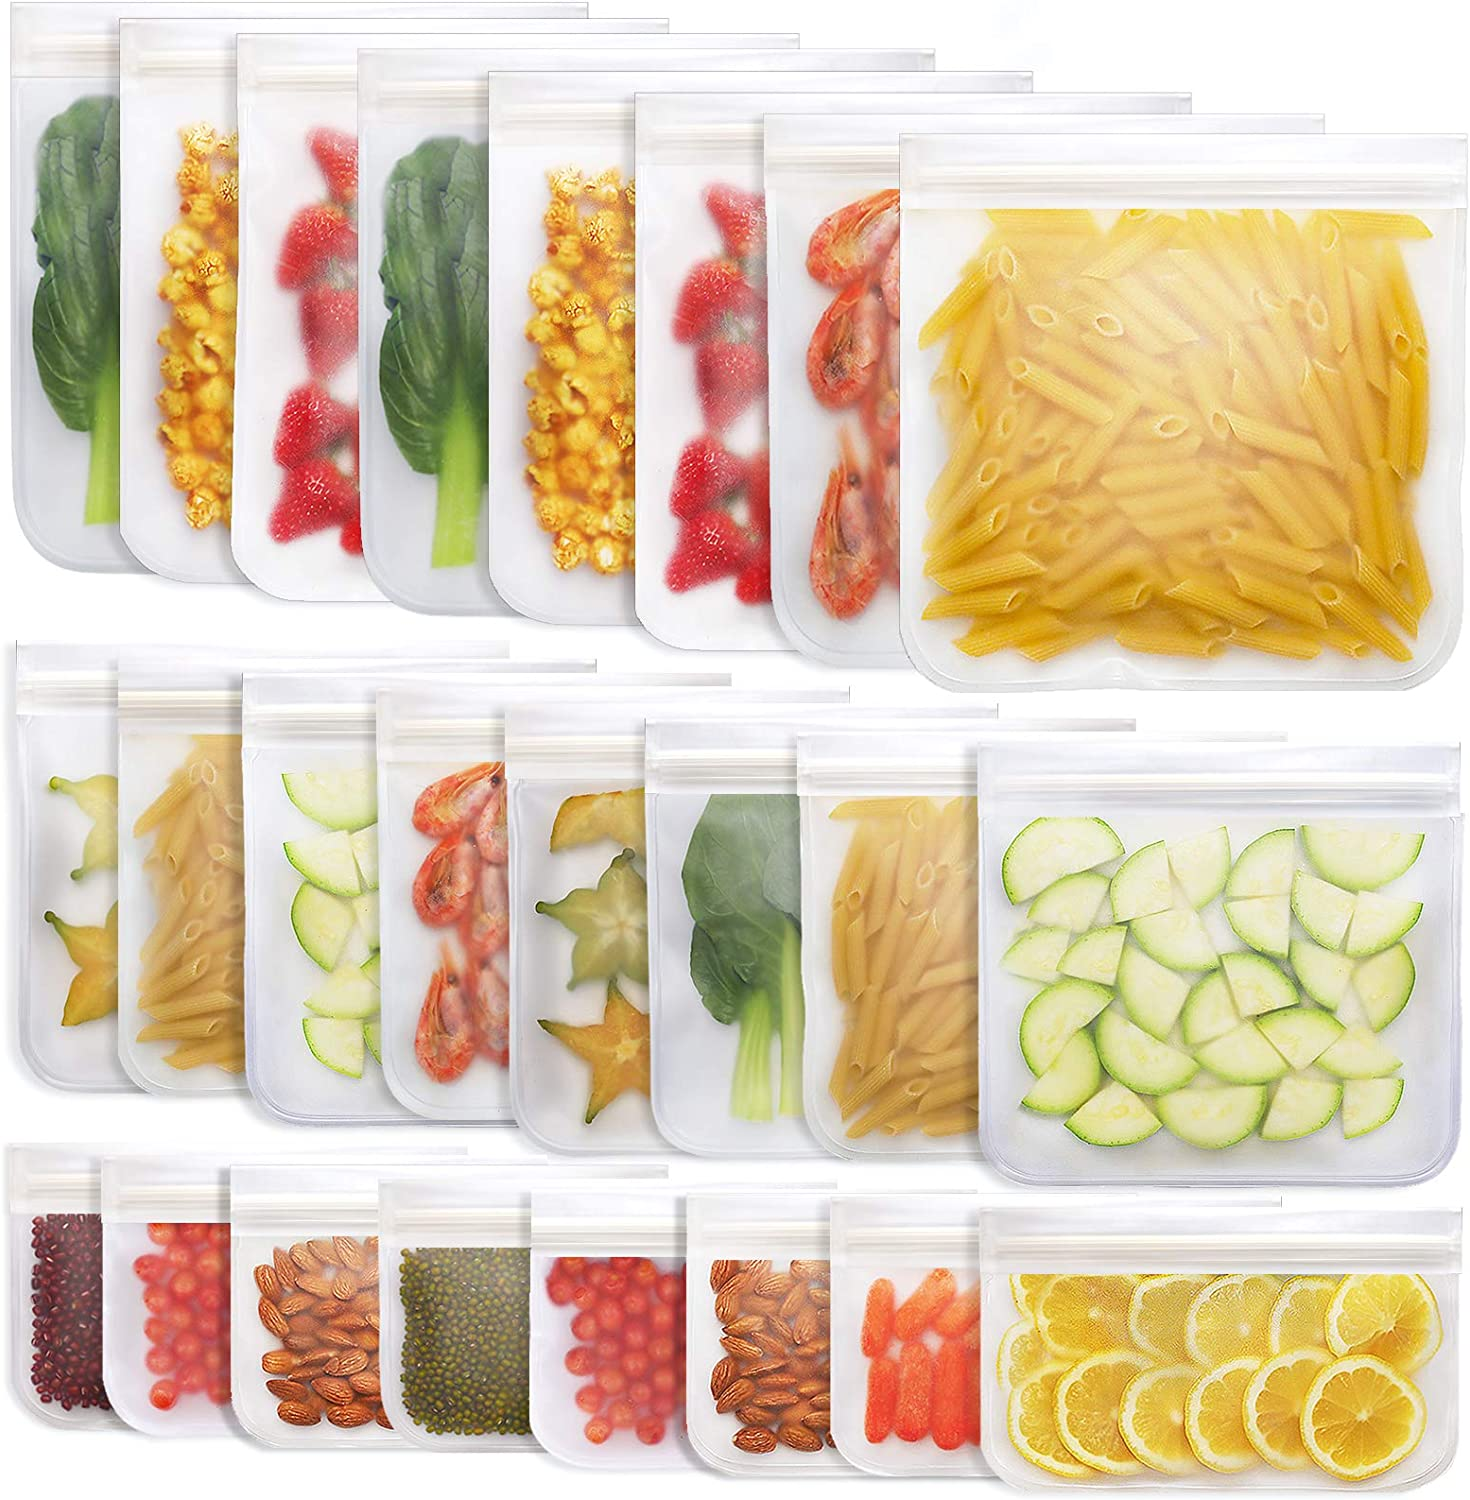 Jagrom 24 Pack Reusable Storage Bags 8 Gallon & 8 Sandwich Lunch Bags & 8 Small Kids Snack Bags For Food, EXTRA THICK Leak Proof Reusable Food Bags, Freezer Bags, Reusable Zipper Bags, BPA FREE, White